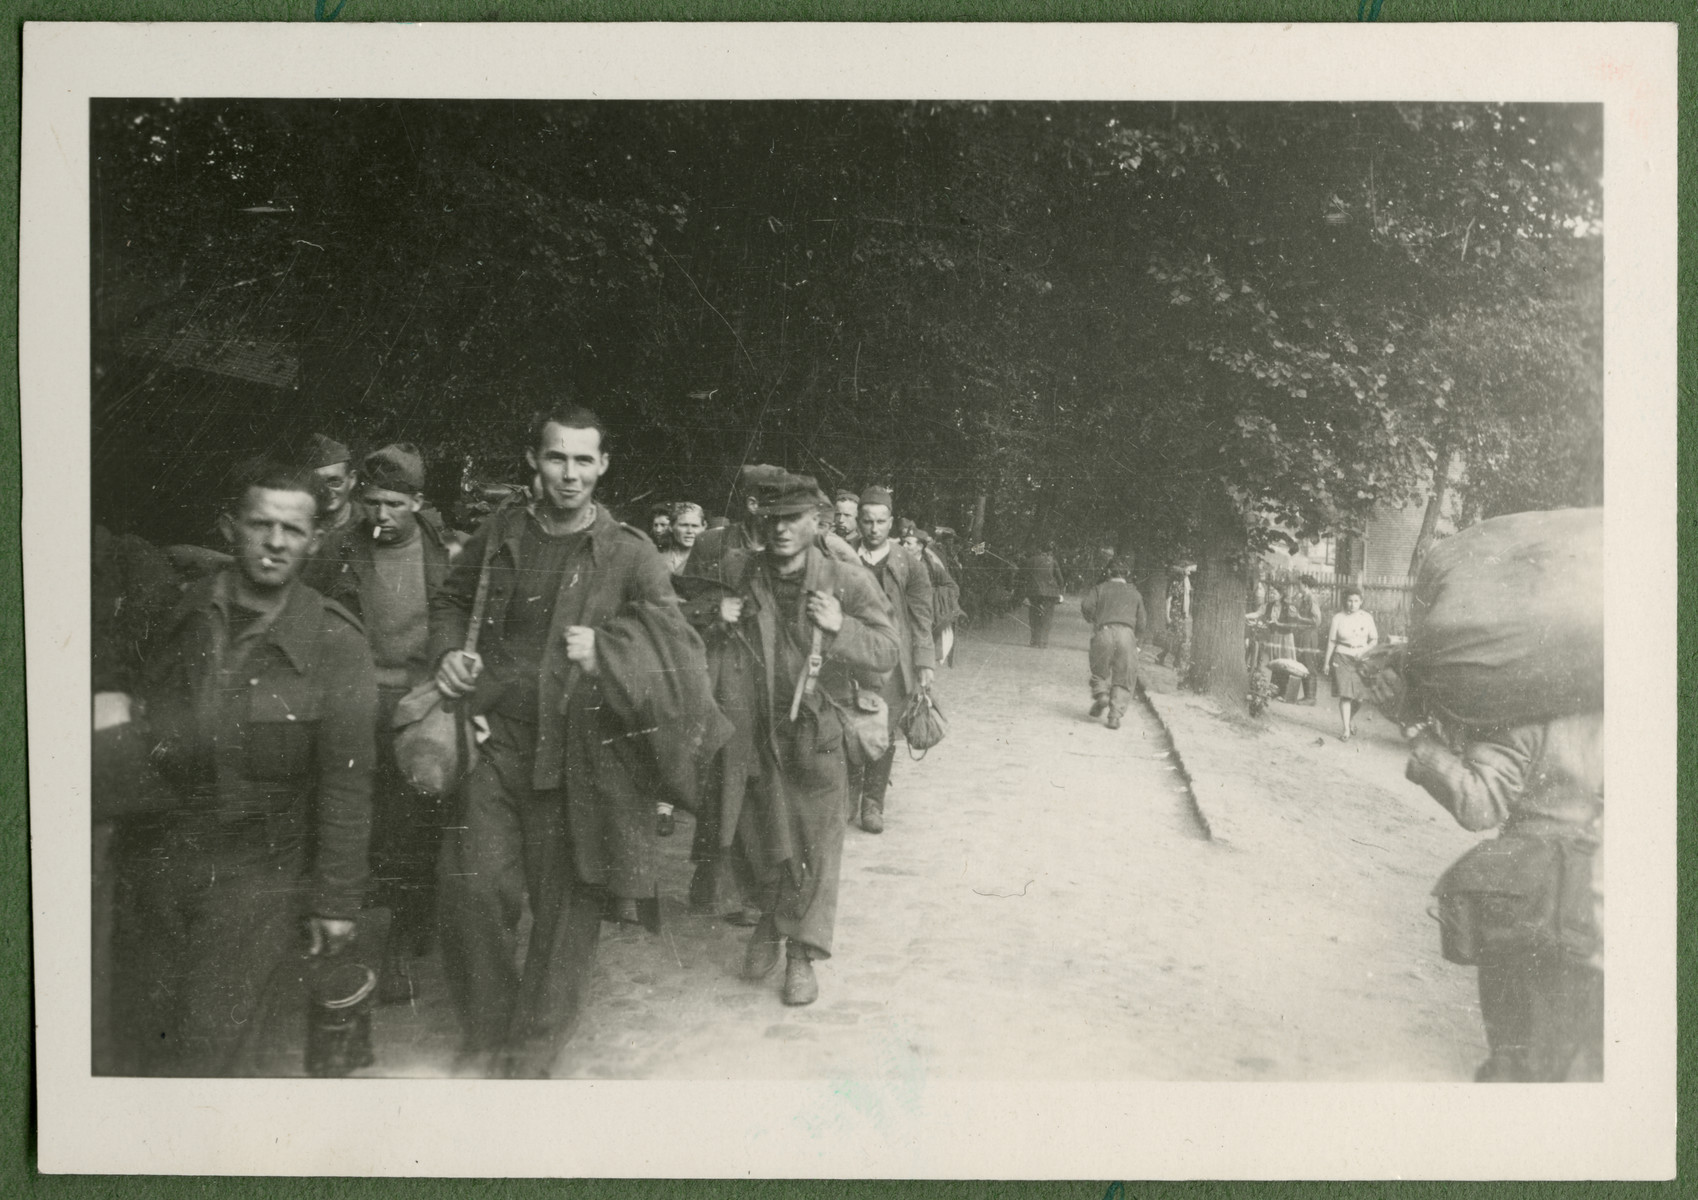 A column of former French prisoners marches down a road in Germany on their return to France.